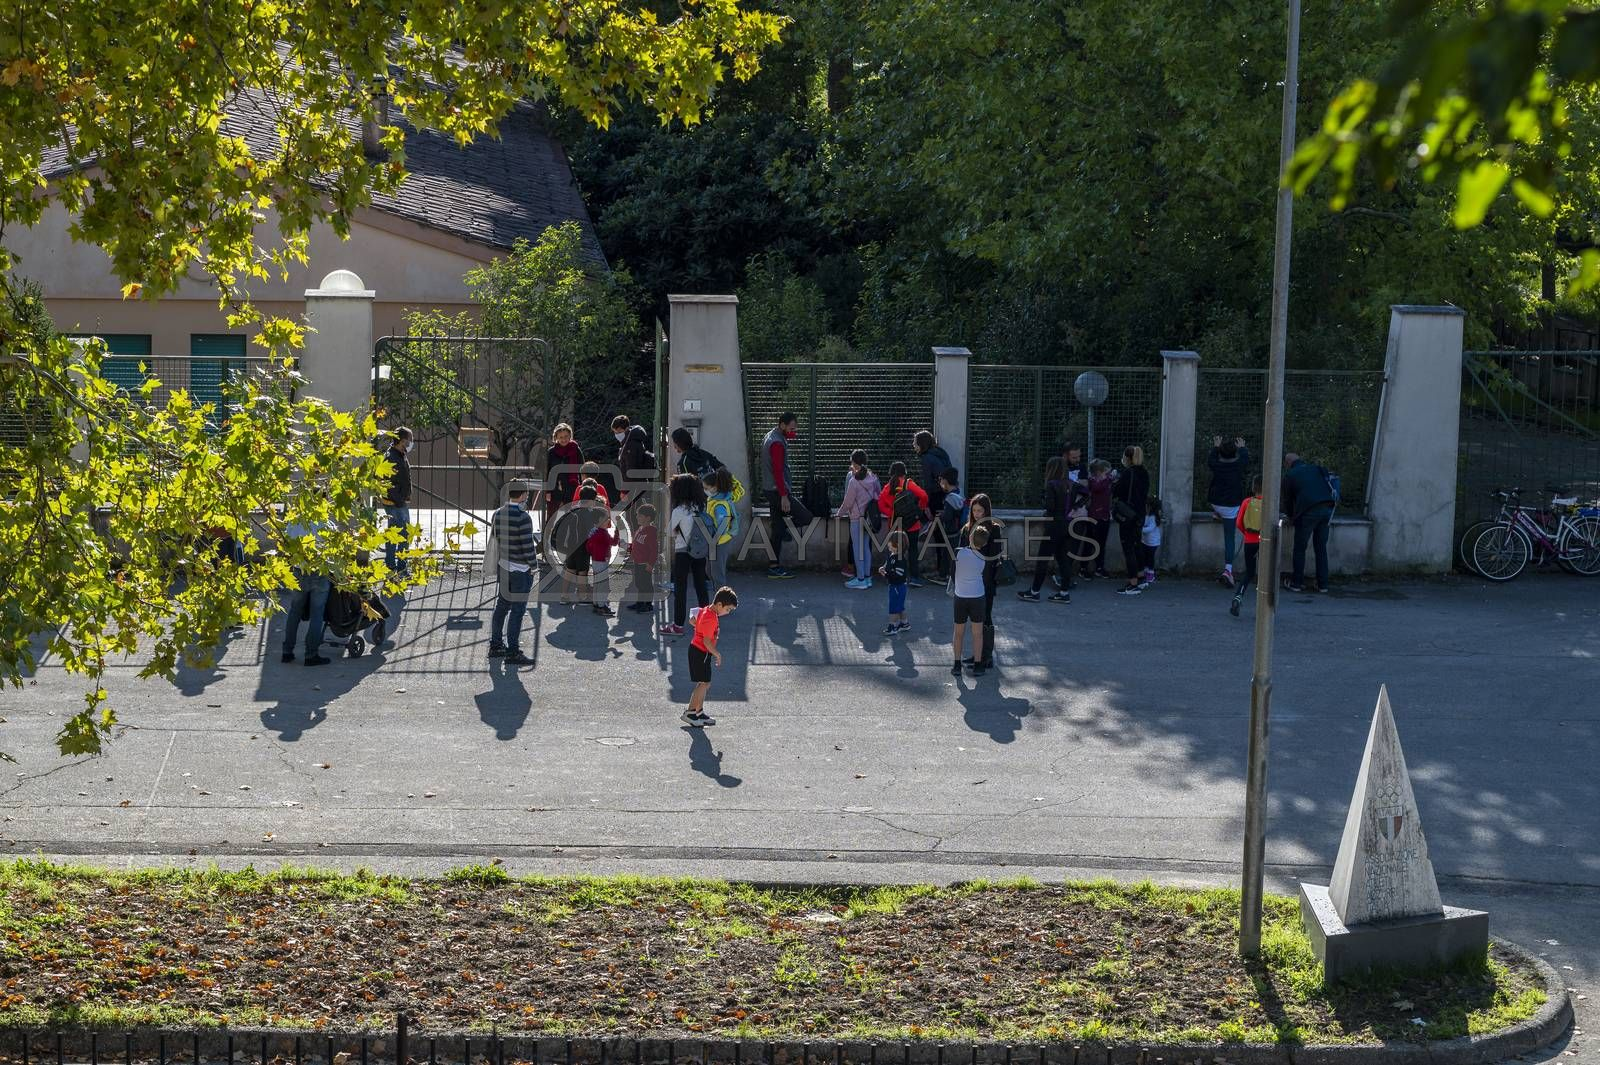 terni,italy october 21 2020:children with parents waiting to enter the school camp